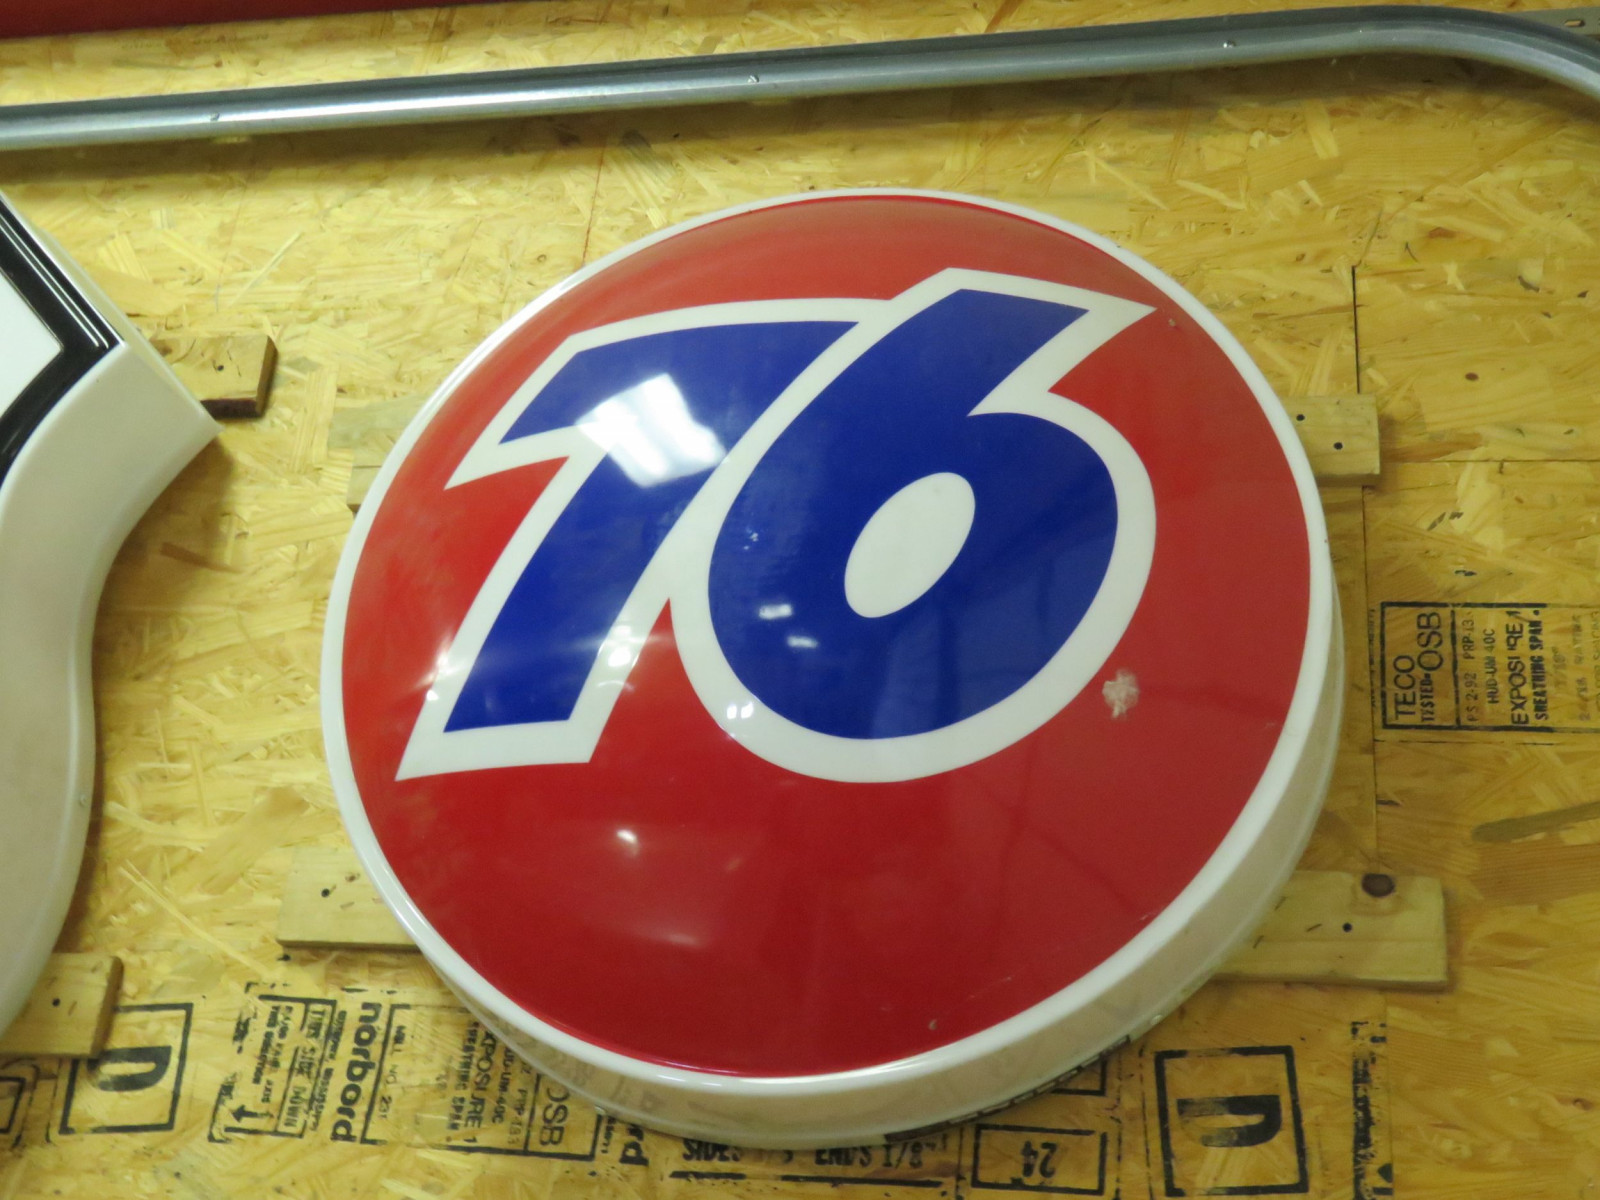 Phillips 76 SS Plastic Sign - Image 1